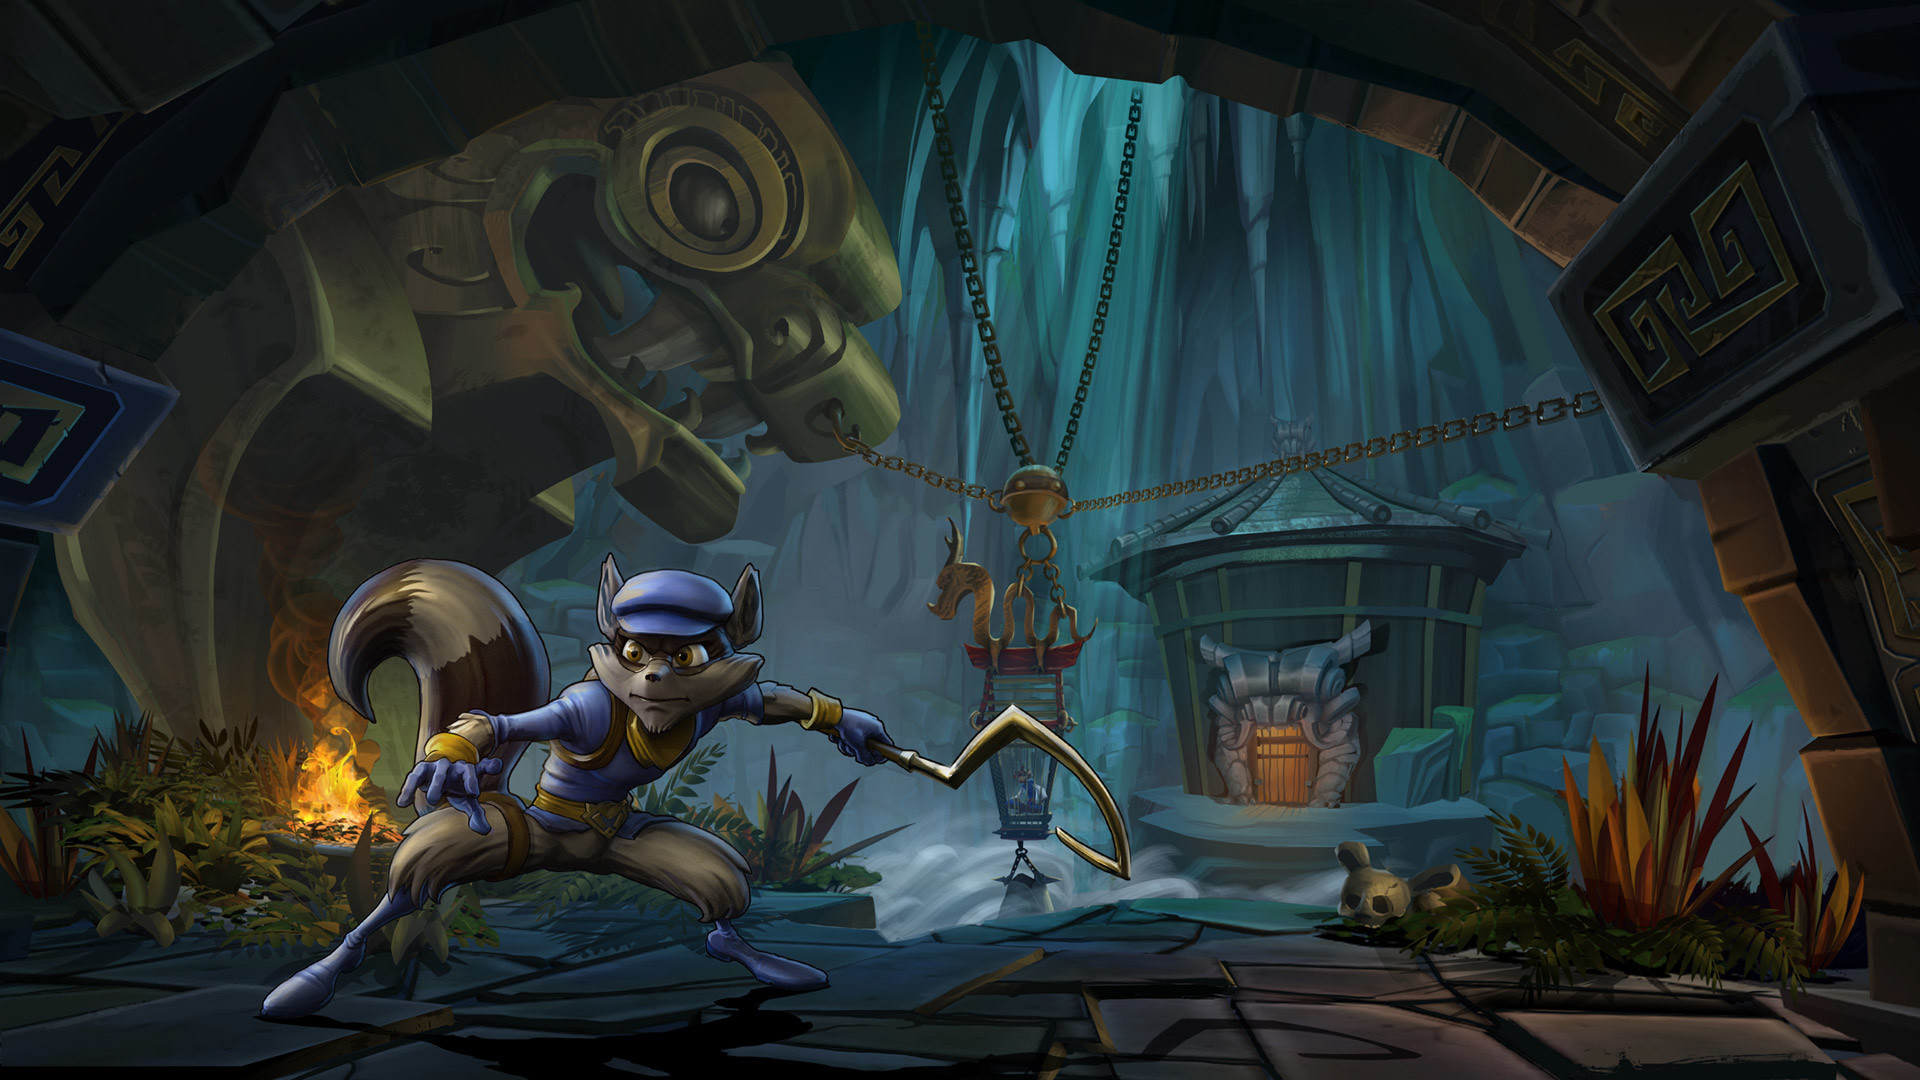 Sly Cooper Wallpapers 79 Images